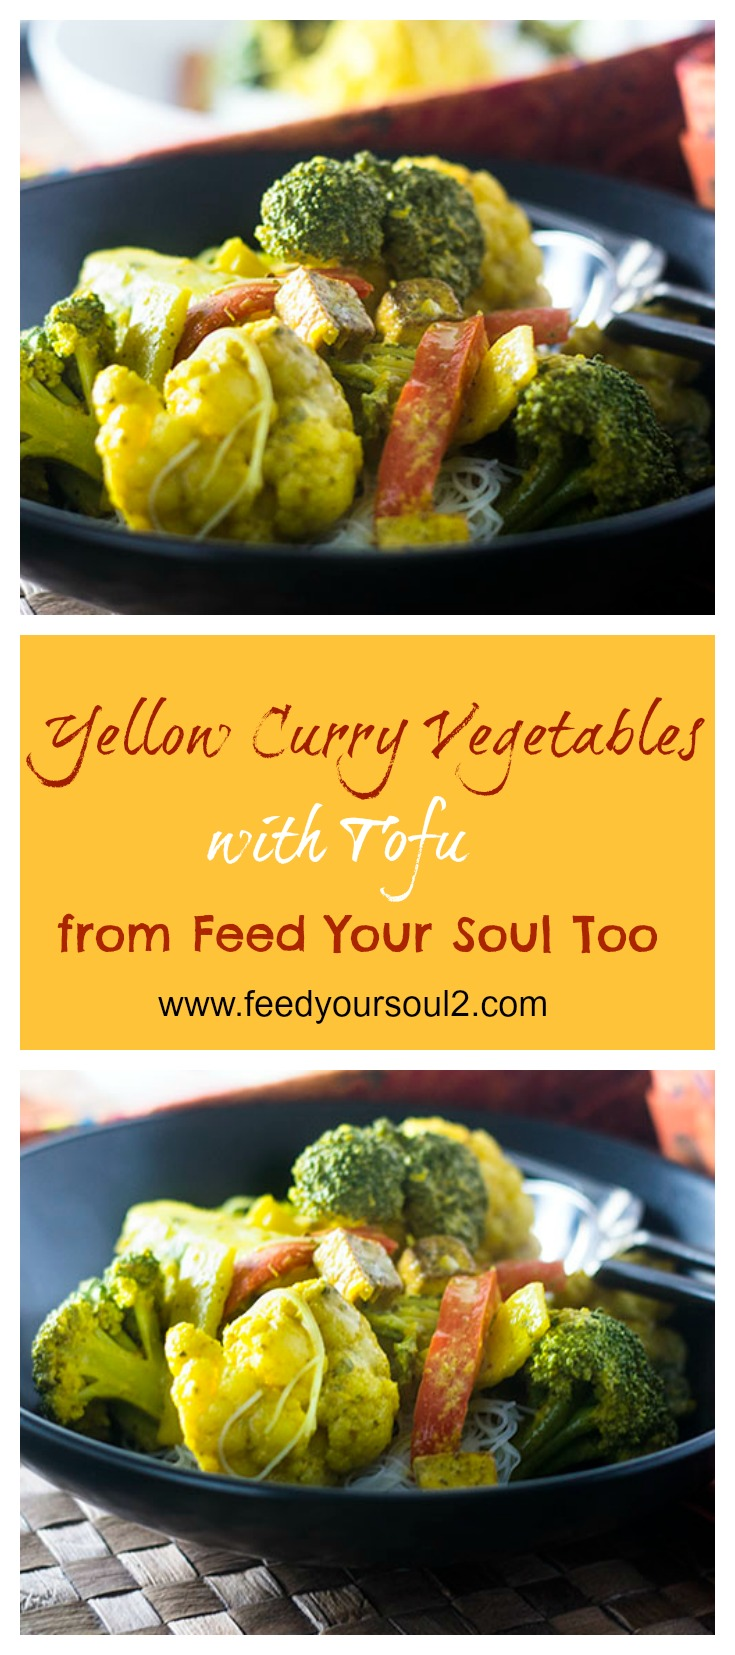 Yellow Curry Vegetables with Tofu #glutenfree #thaifood #curry | feedyoursoul2.com